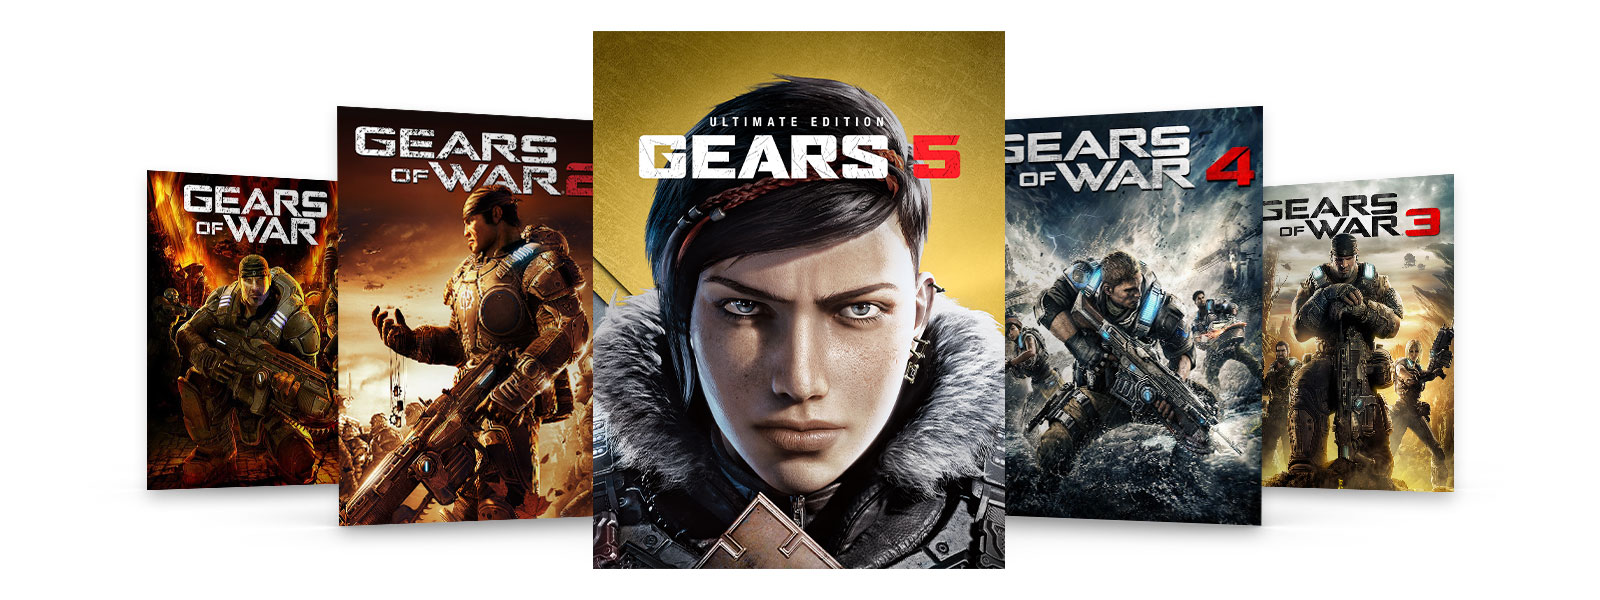 Box art of Gears of War Ultimate Edition and Gears 2, 3 and 4.